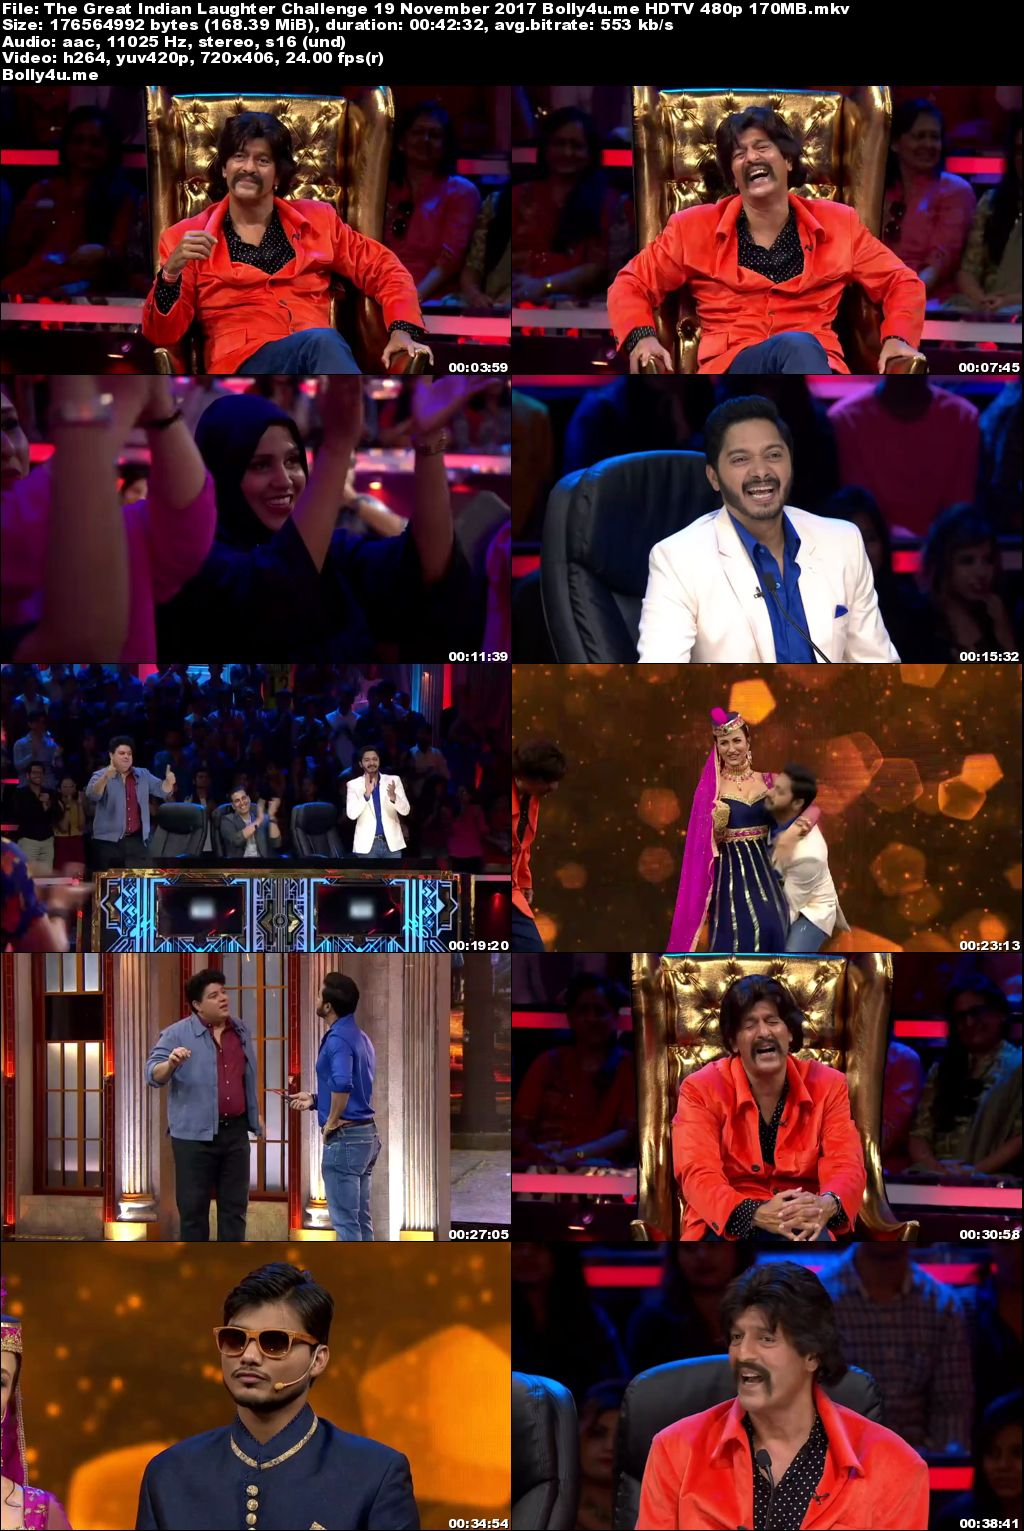 The Great Indian Laughter Challenge HDTV 480p 170MB 19 November 2017 Download